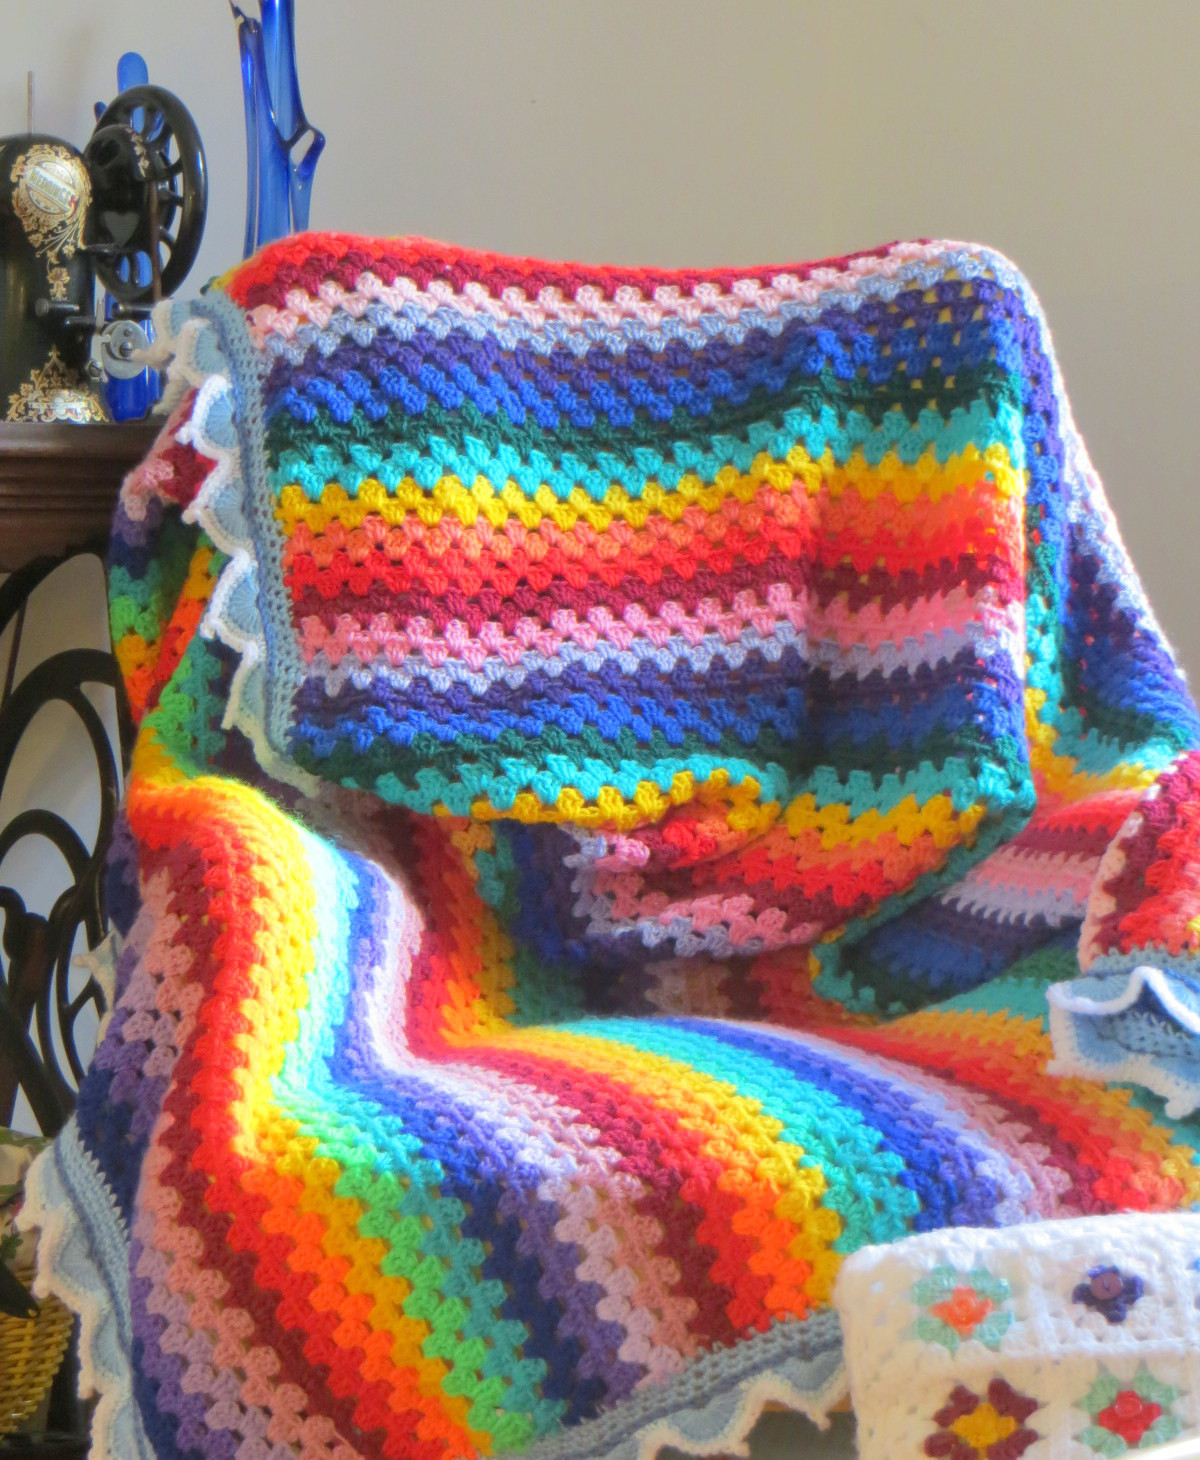 A Rainbow crochet Blanket is finally finished ⋆ Lazy